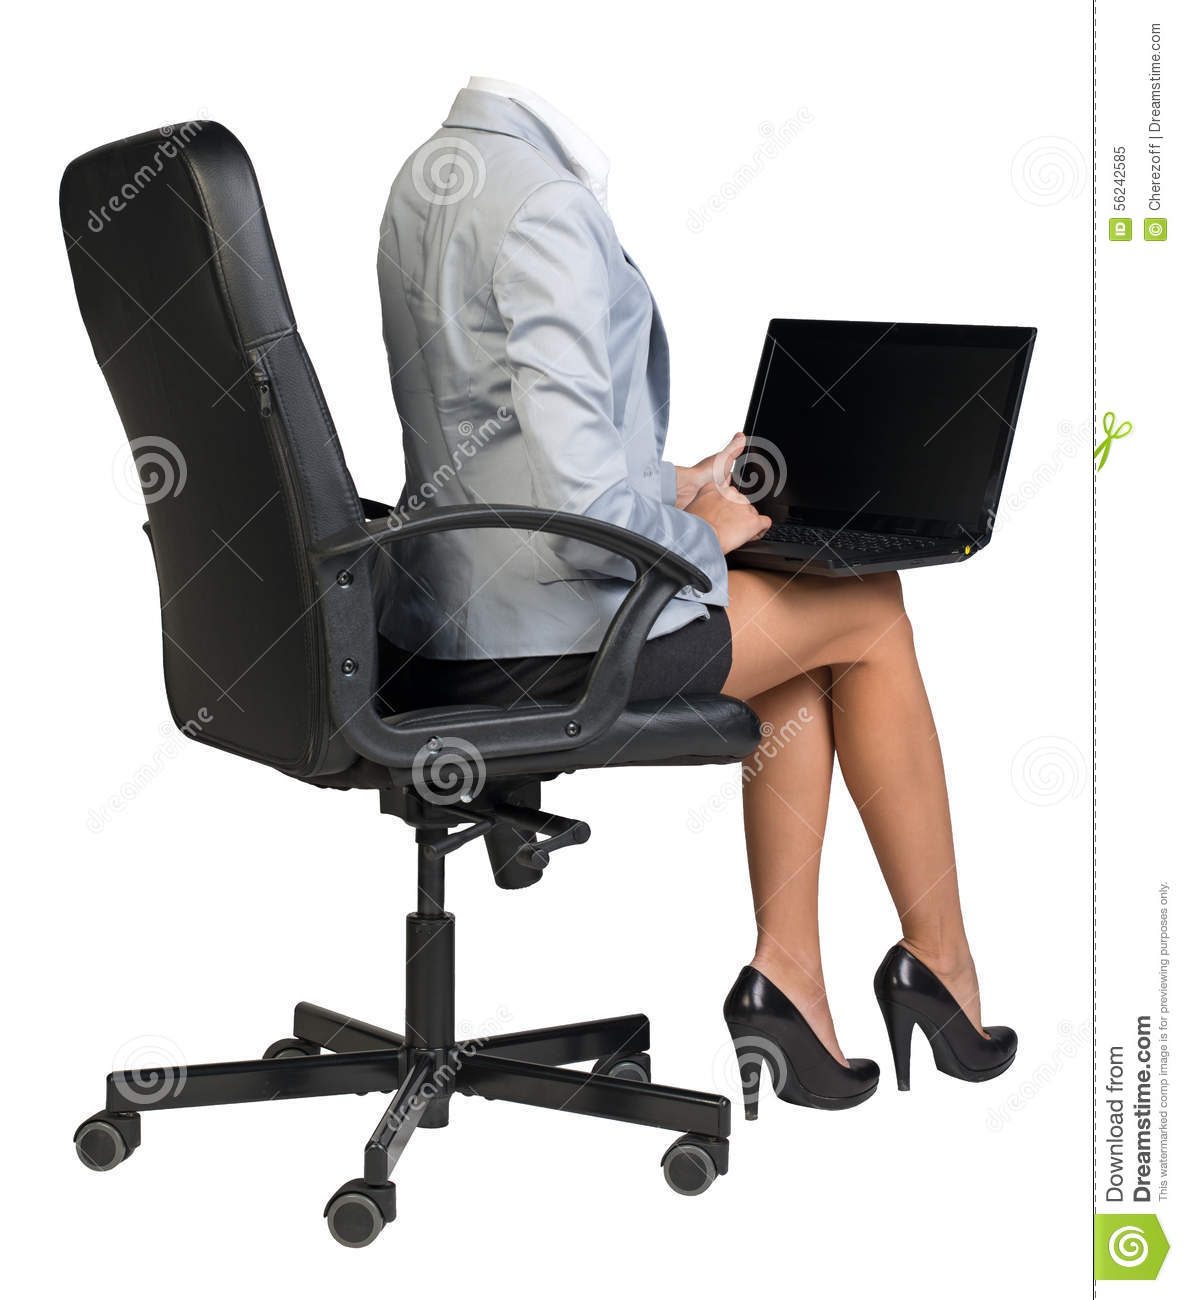 Keyboard Chair Woman Body Sitting In Chair Stock Image Image Of Keyboard